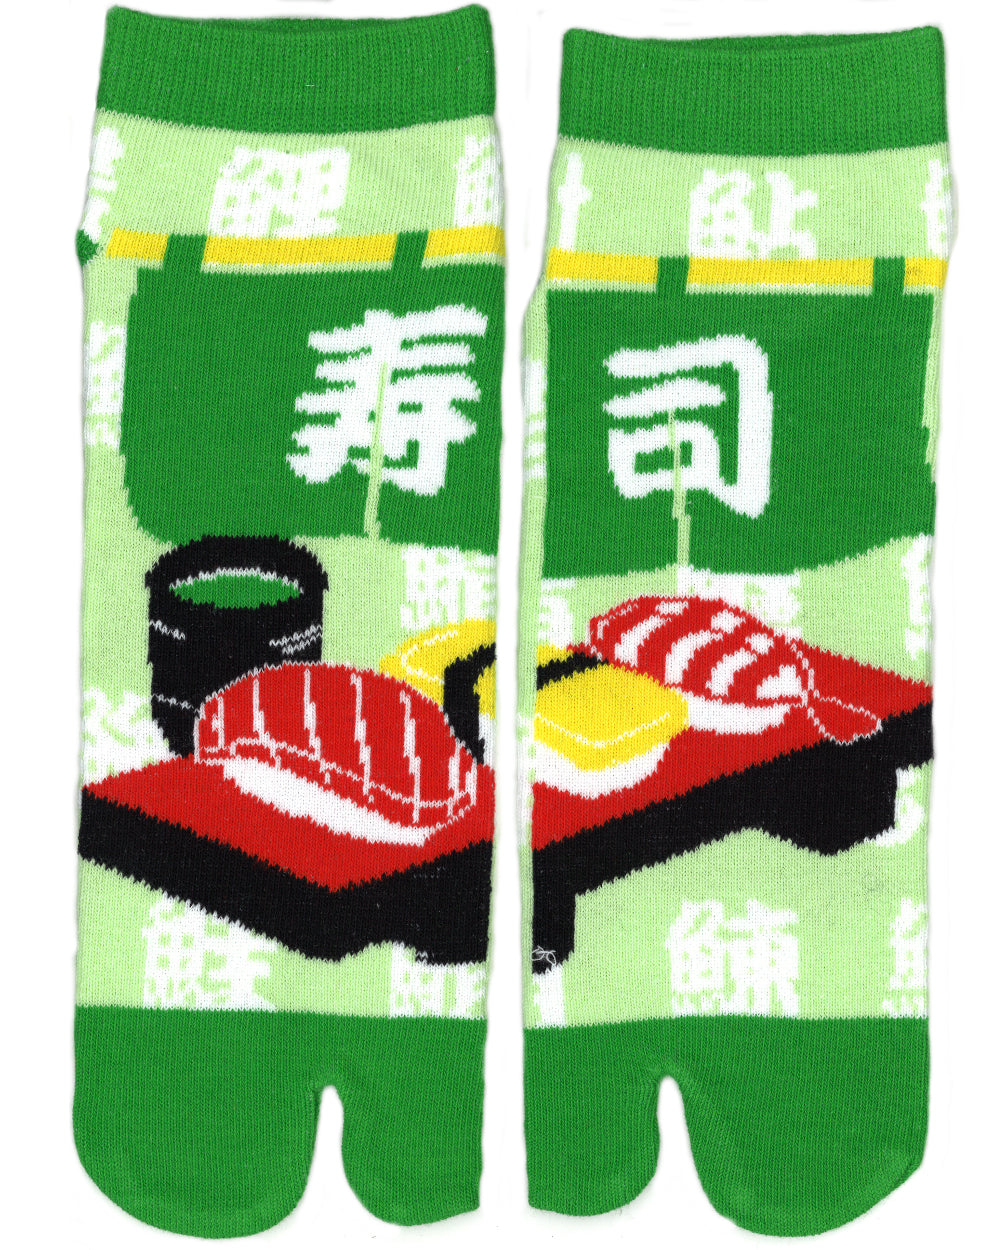 Shinobiya Original Tabi Socks: Sushi